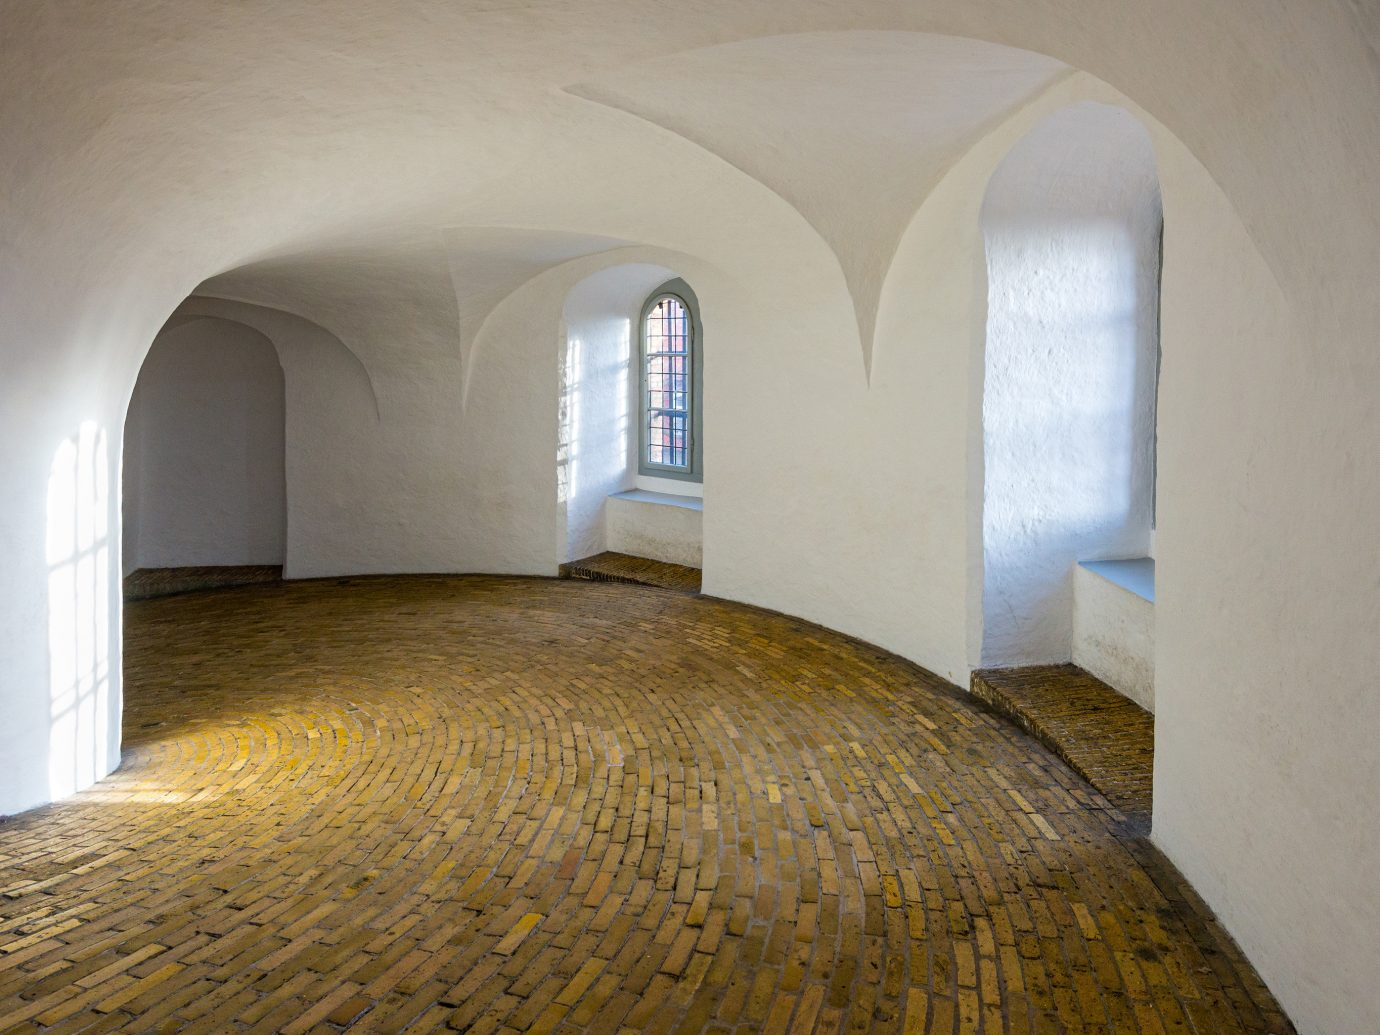 Copenhagen Denmark Trip Ideas indoor wall building property Architecture arch estate daylighting ceiling floor apartment house window Bedroom stone